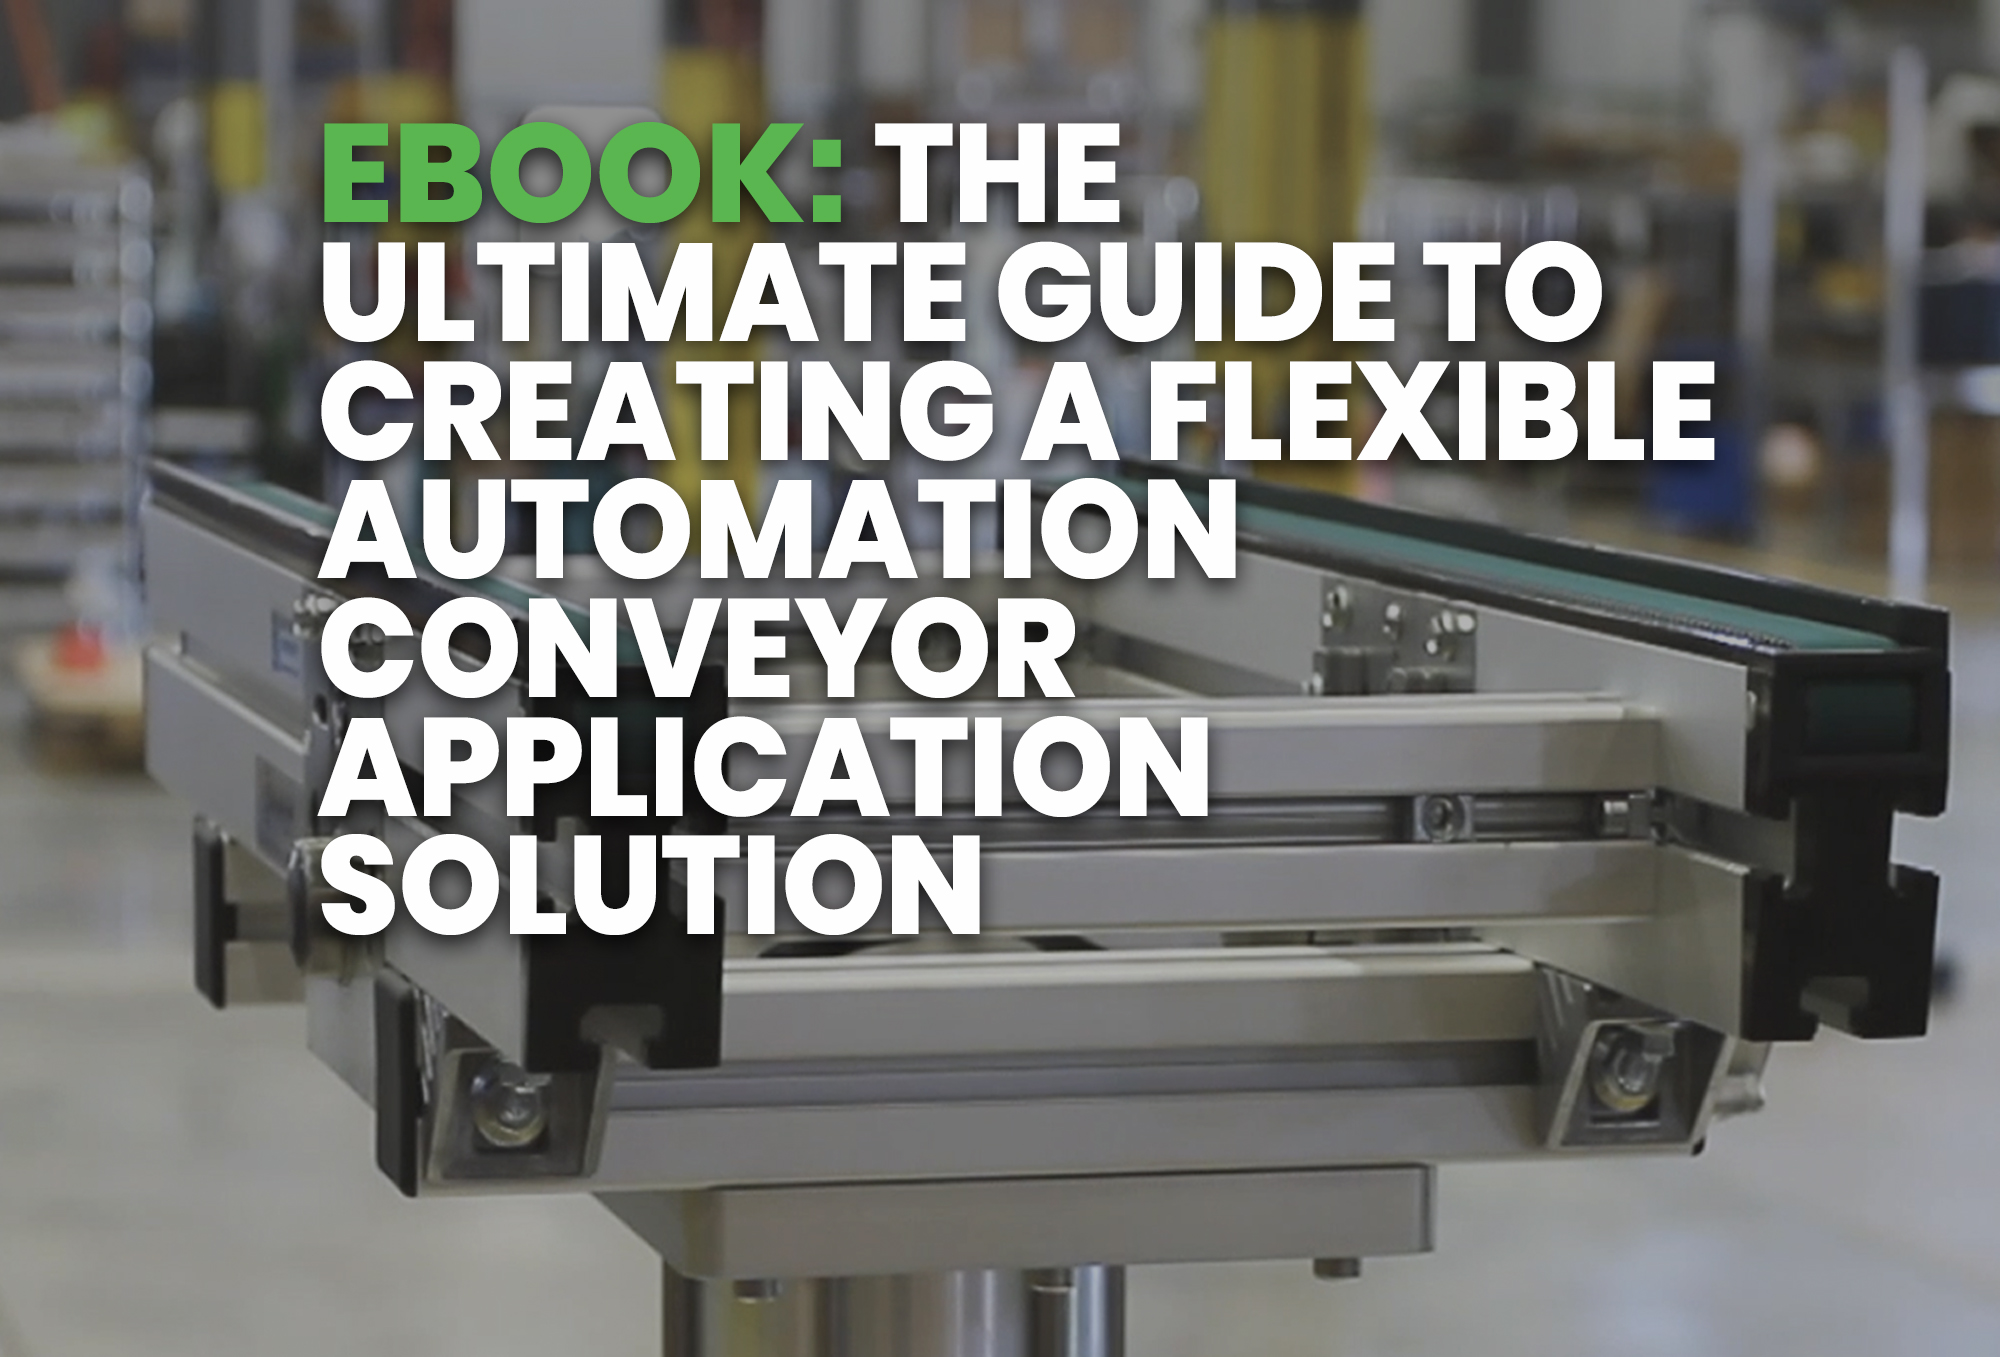 Resource - The Ultimate Guide to Creating a Flexible Automation Conveyor Application Solution